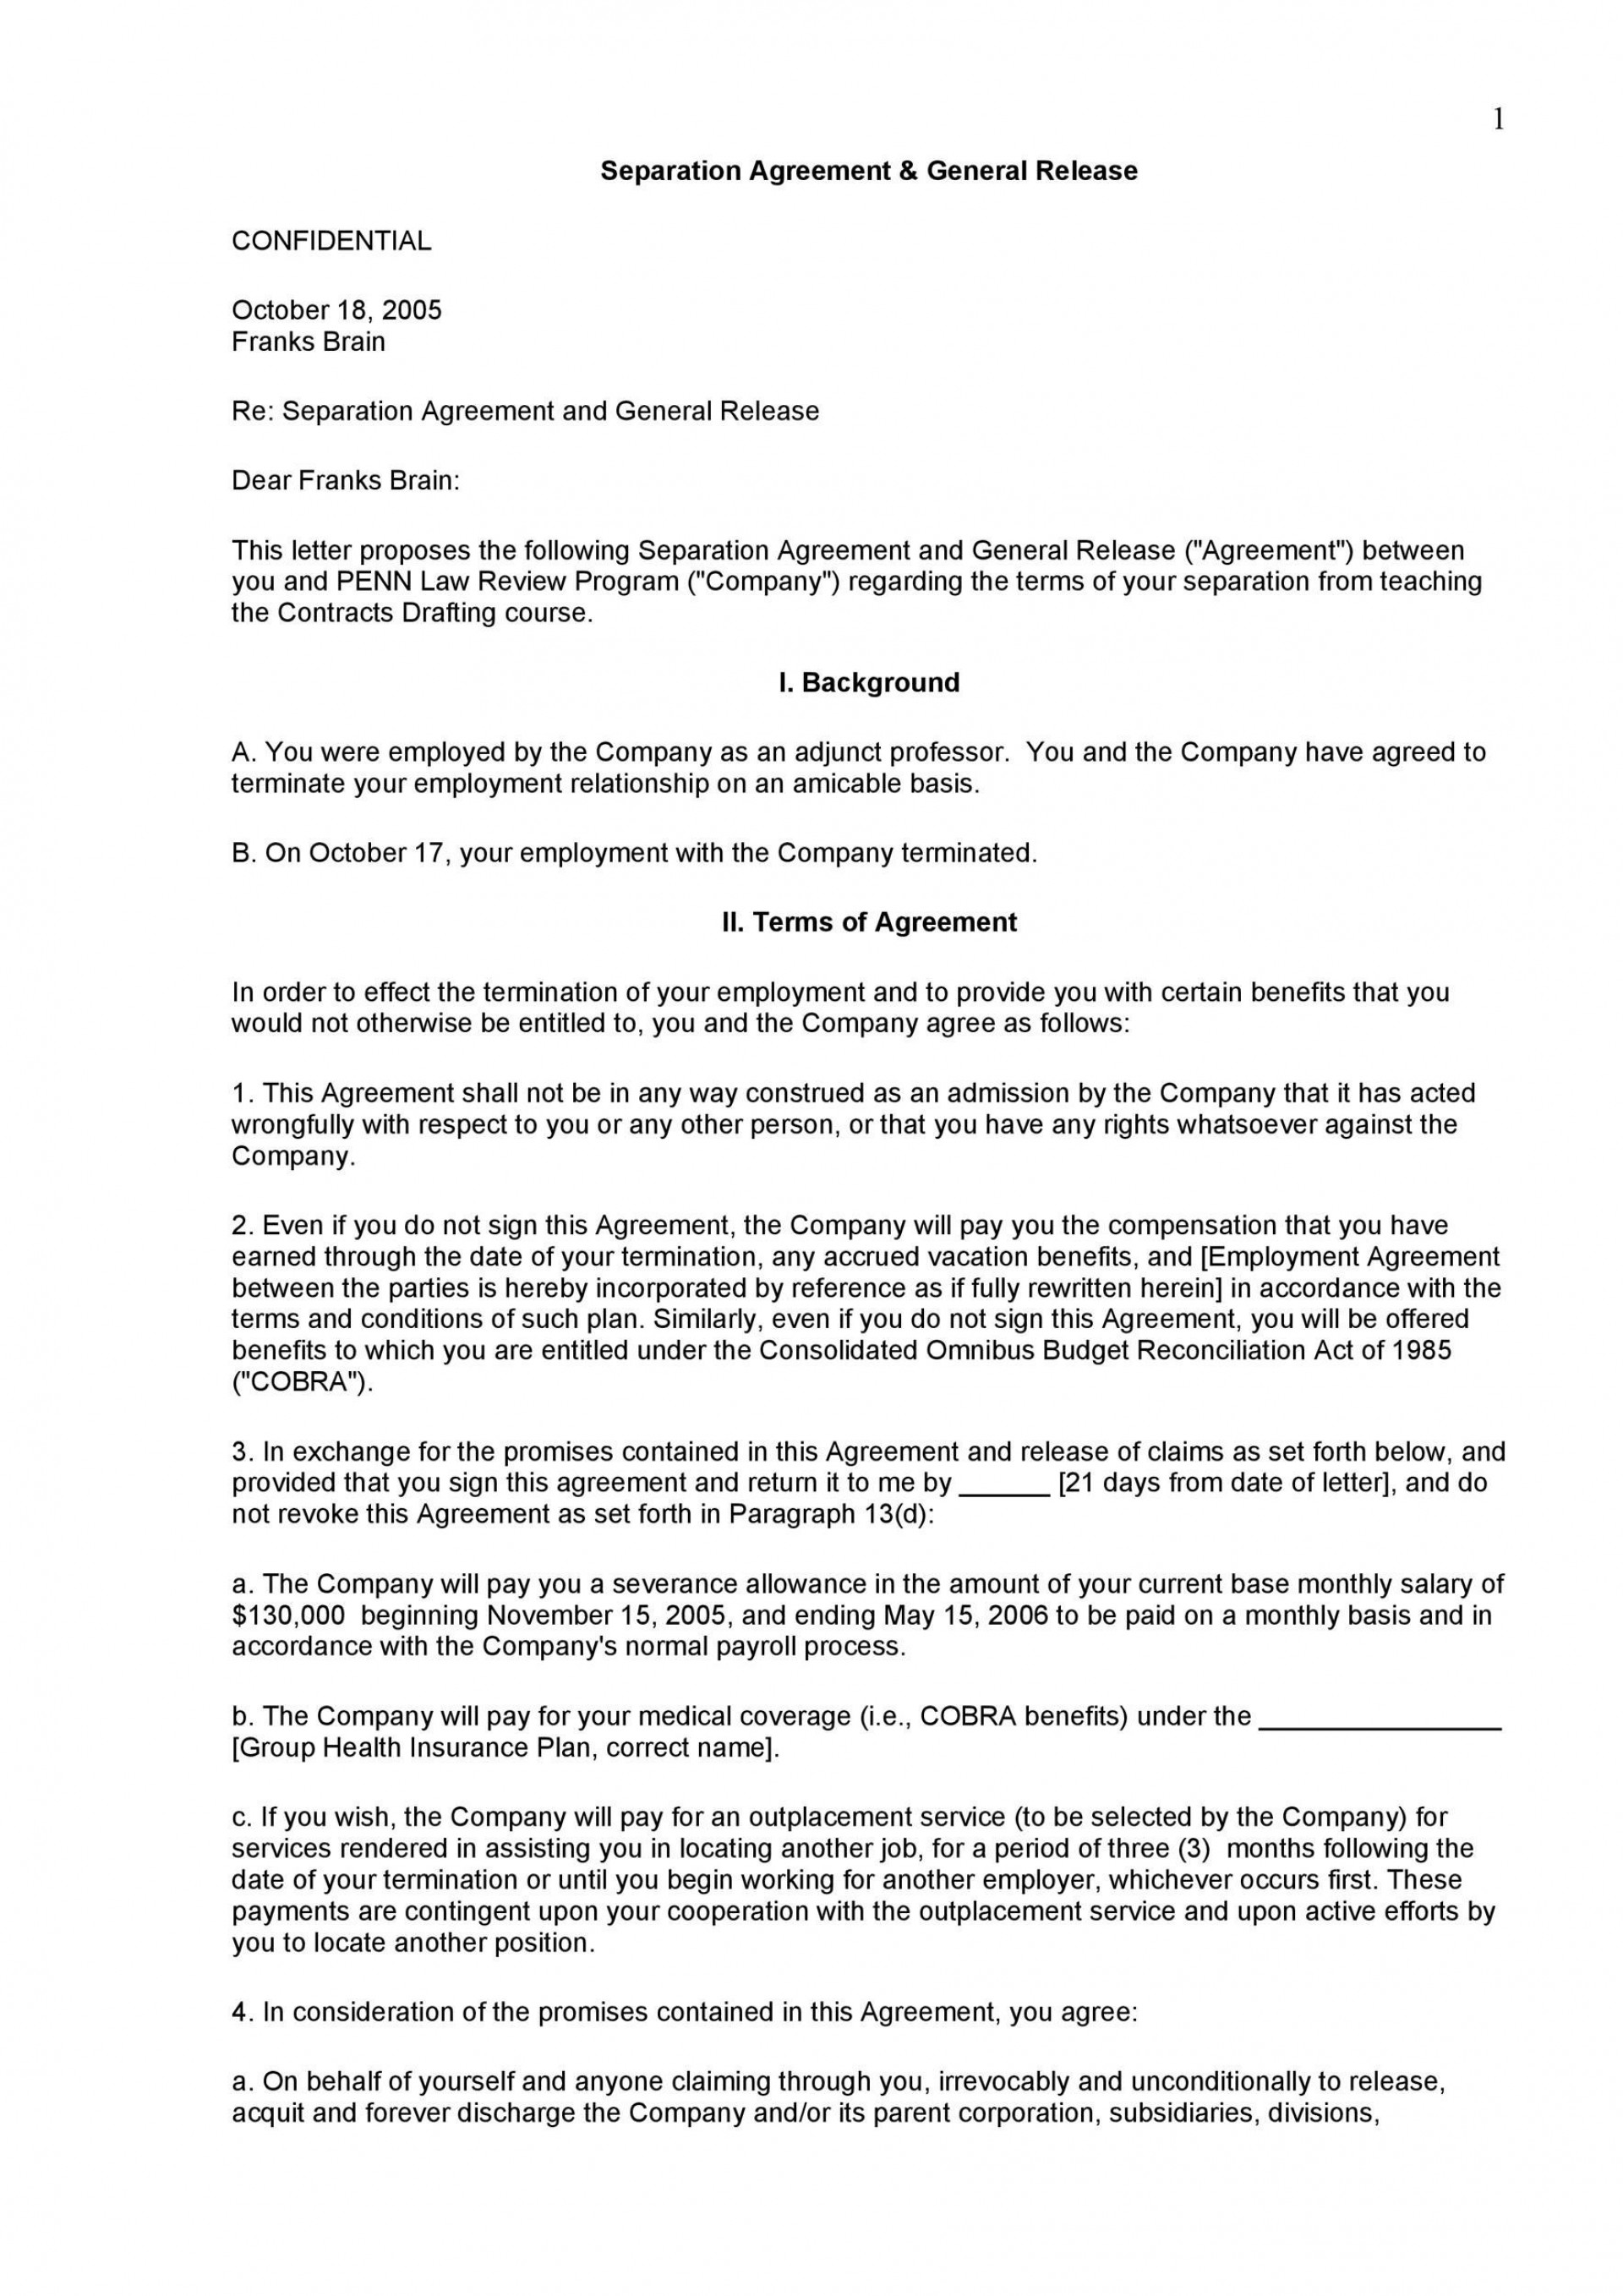 007 Formidable Employment Separation Agreement Template Highest Clarity  Nc Shrm Employee Florida1920